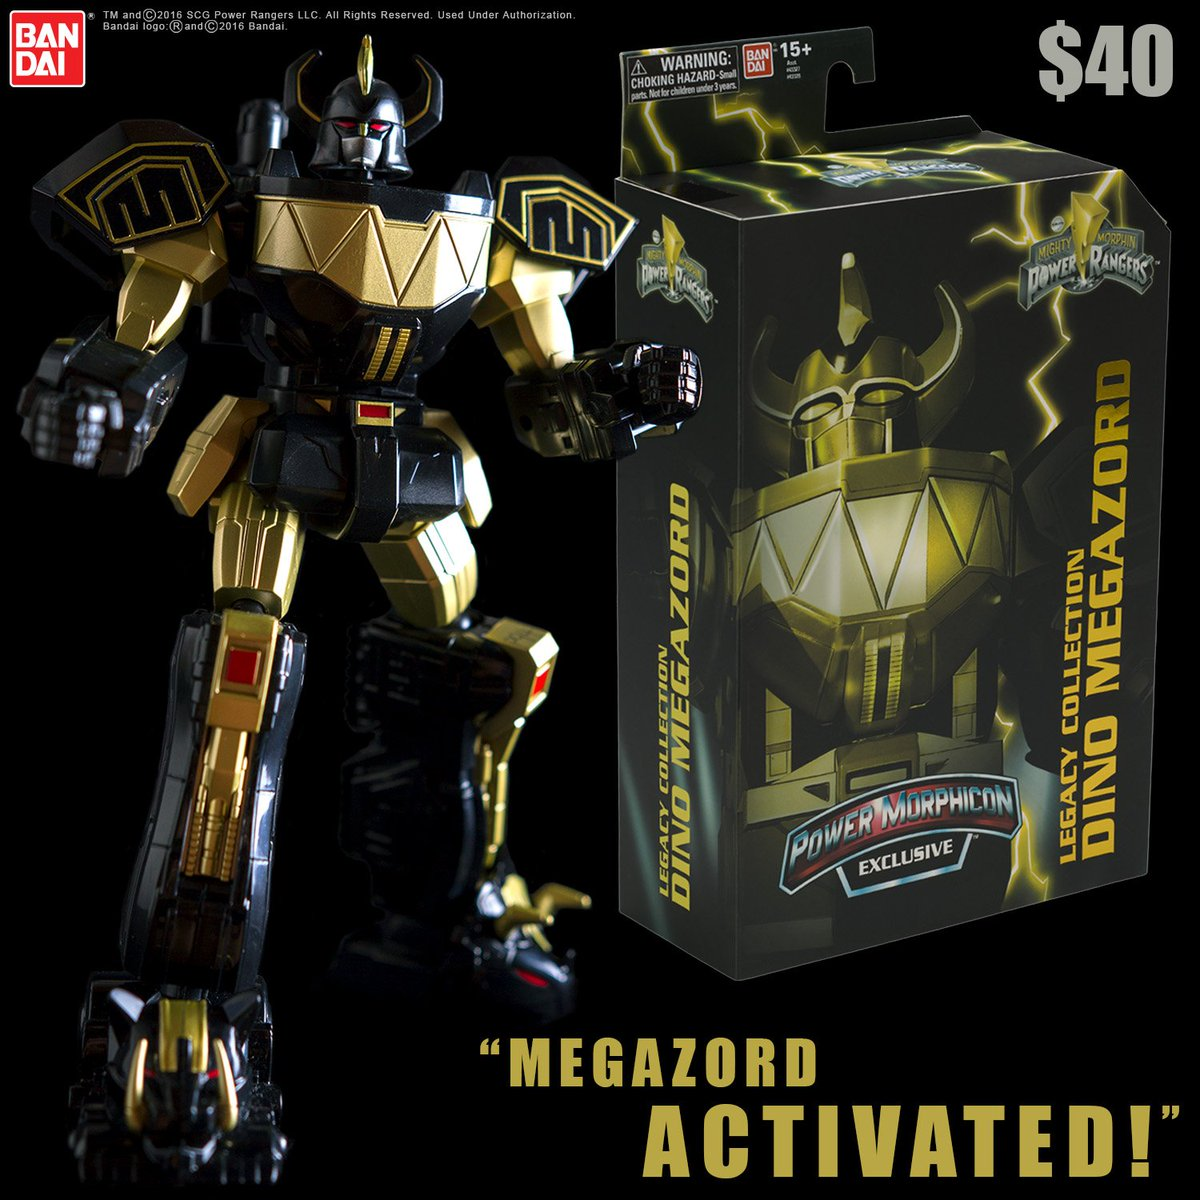 Power Morphicon exclusive alert! Check out our Legacy Collection Dino Megazord. 500 made and ONLY available at PMC! https://t.co/F4mkYvtLEr